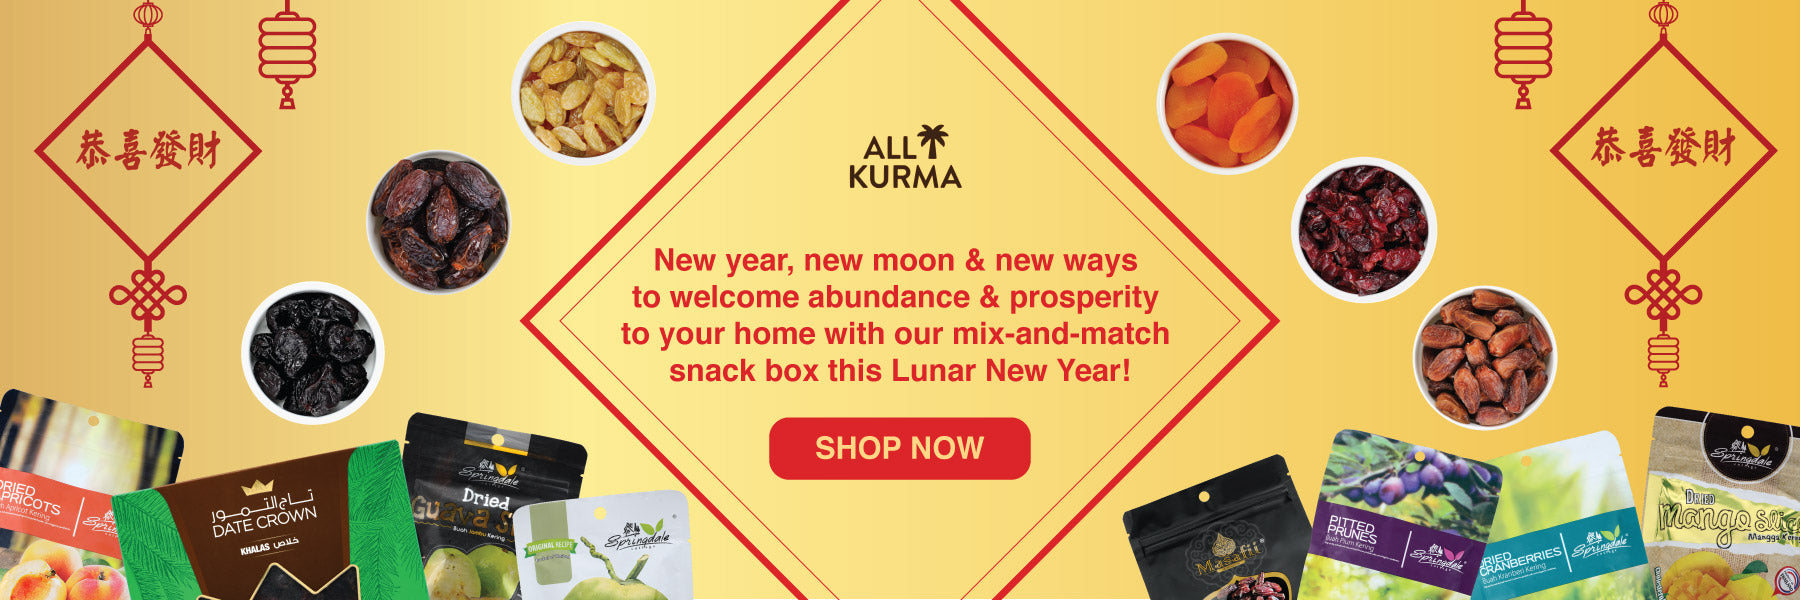 chinese new year snacks, halal cny snacks, dried fruits, dried nuts, dried dates, mix & match bundle, healthy snacks singapore, buy healthy snacks, halal snacks singapore, healthy cny snacks